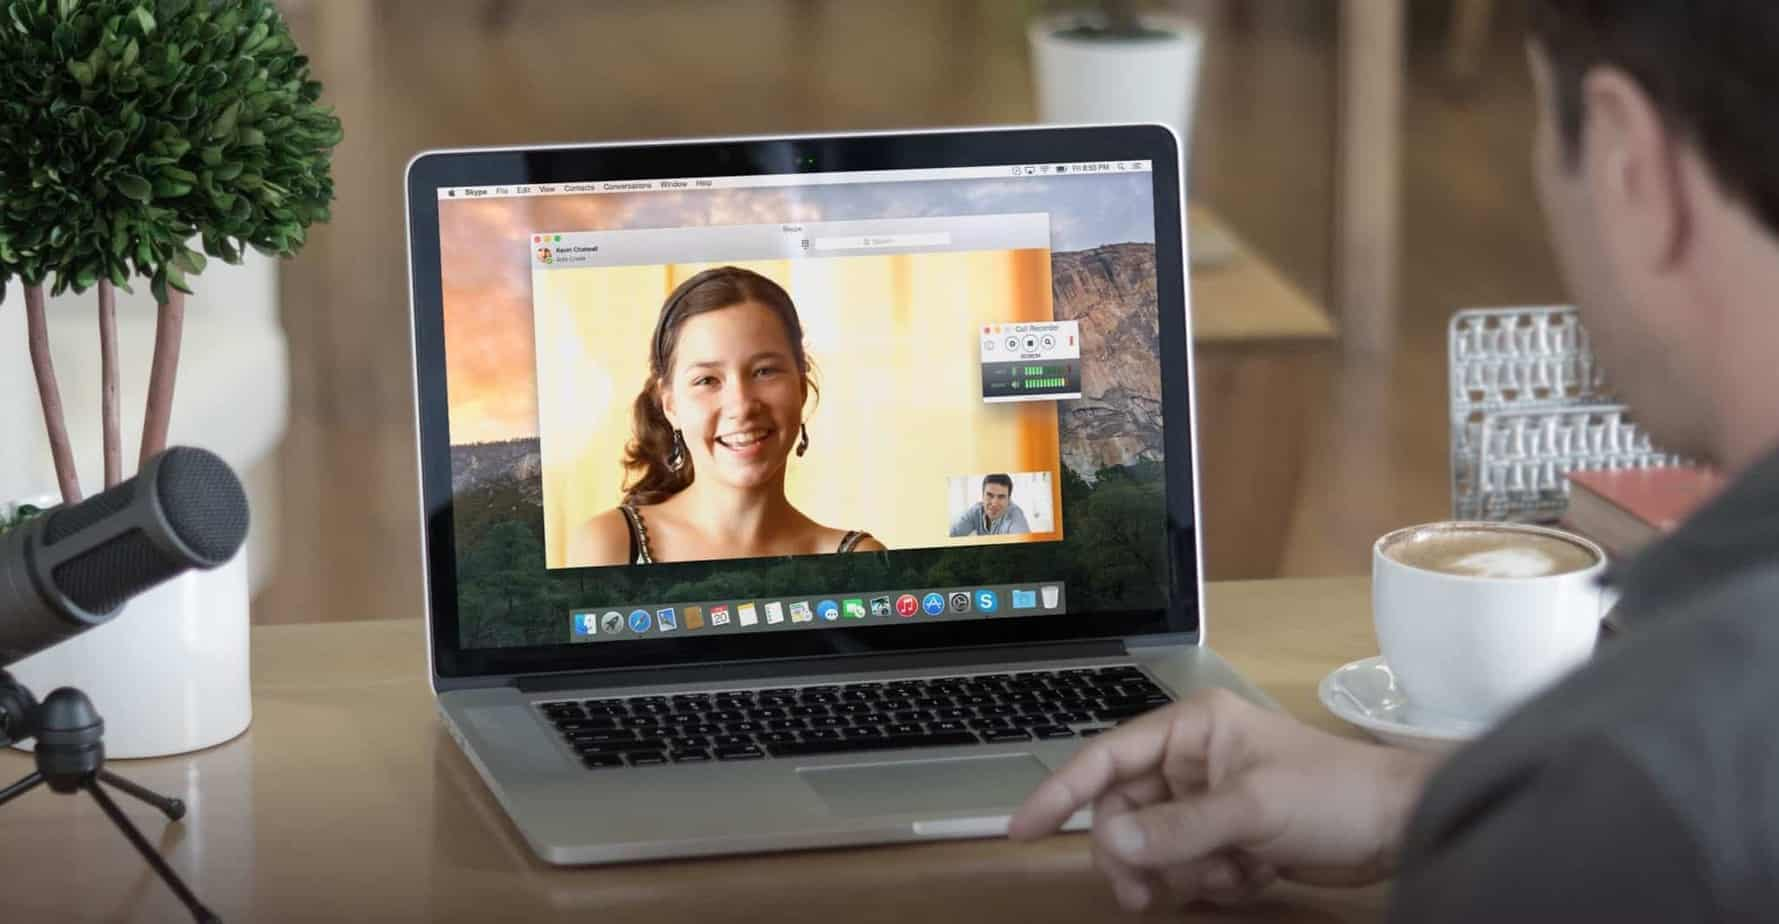 How To Record Podcast With Skype